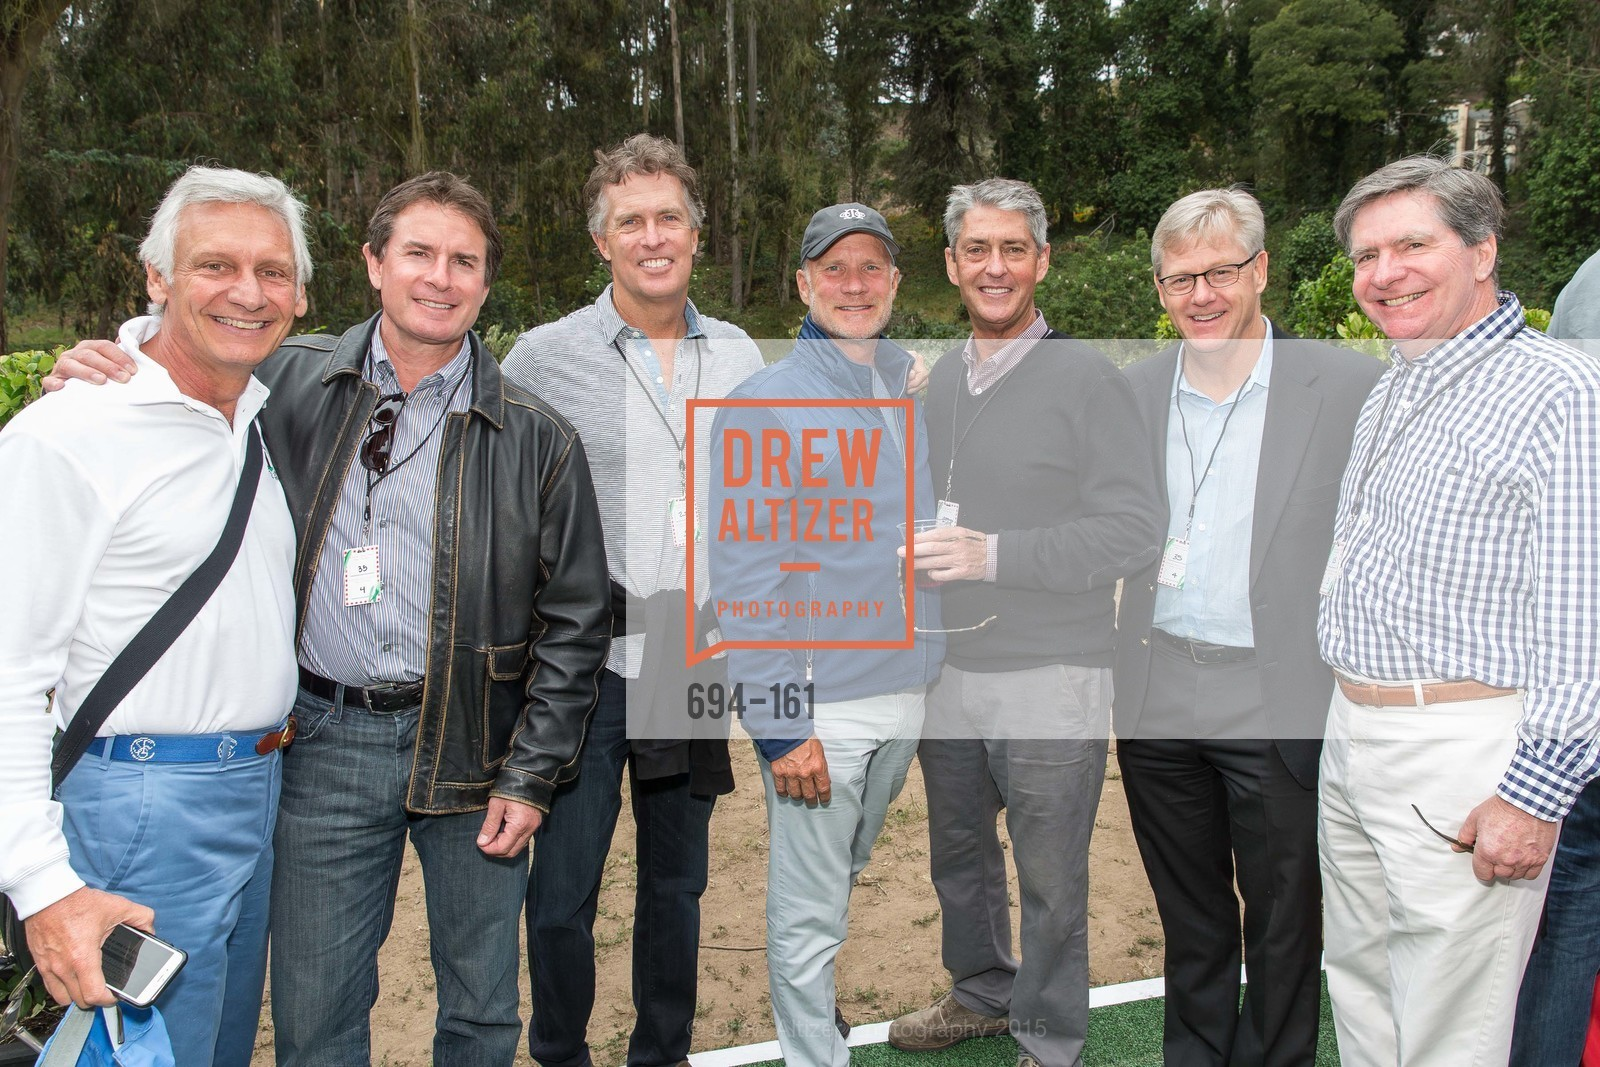 Dean Riskas, Larry Solomon, Mike Corley, Richard Steiny, Tom Suiter, Bill Ring, Tom Walsh, THE BIG PICNIC Kicking off  2015 Stern Grove Season, Stern Grove. 2750 19th Avenue, June 14th, 2015,Drew Altizer, Drew Altizer Photography, full-service agency, private events, San Francisco photographer, photographer california